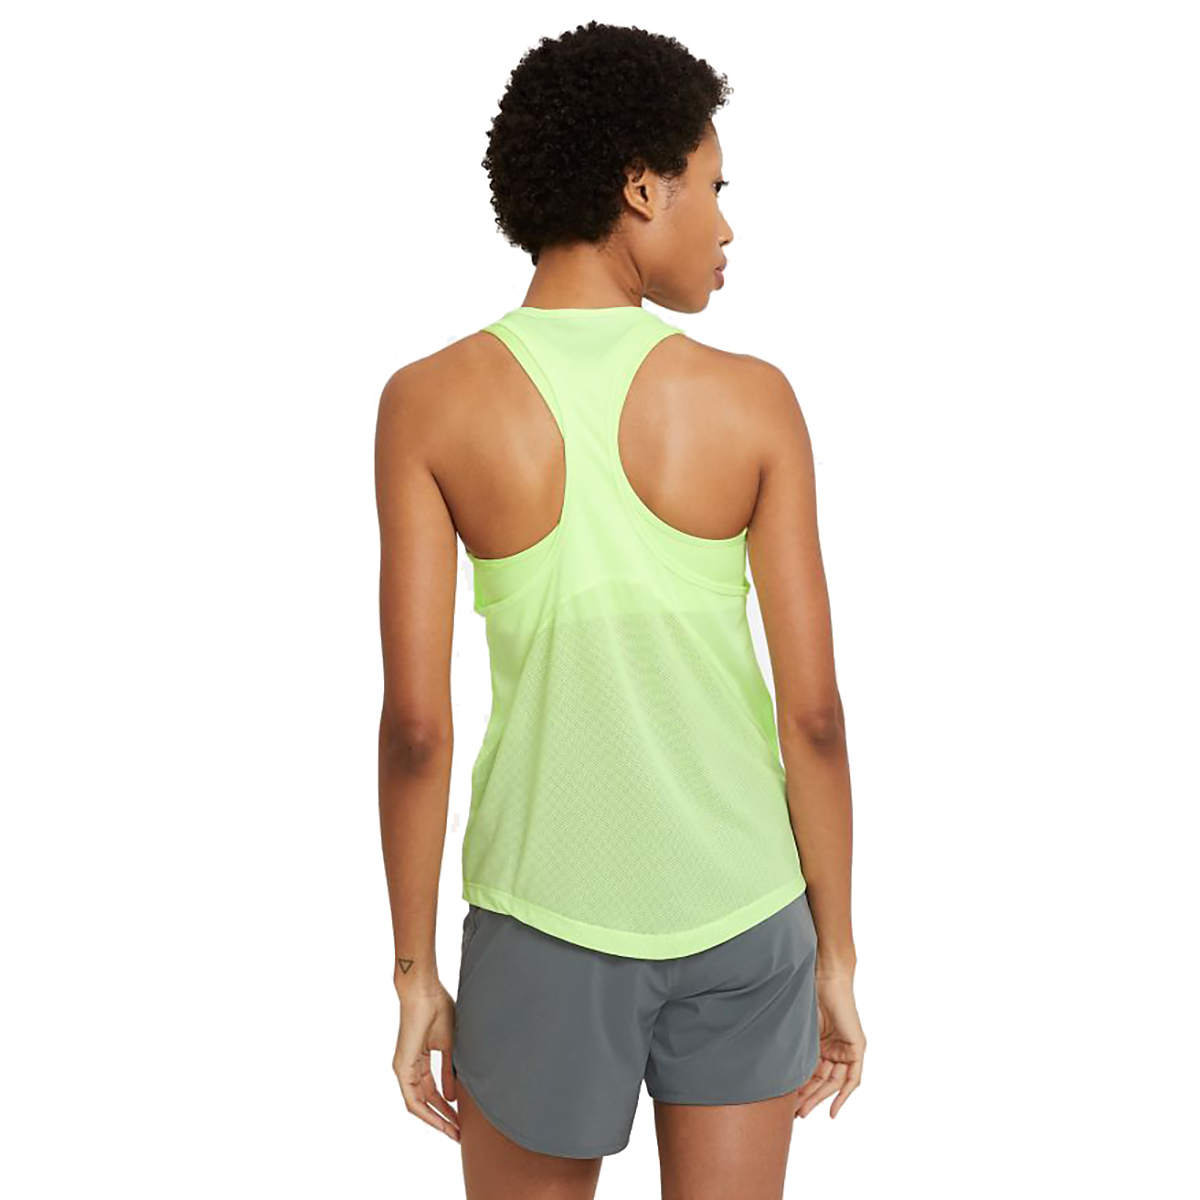 Women's Nike Miler Women's Running Singlet - Color: Barely Volt/Reflective Silver - Size: XS, Barely Volt/Reflective Silver, large, image 2